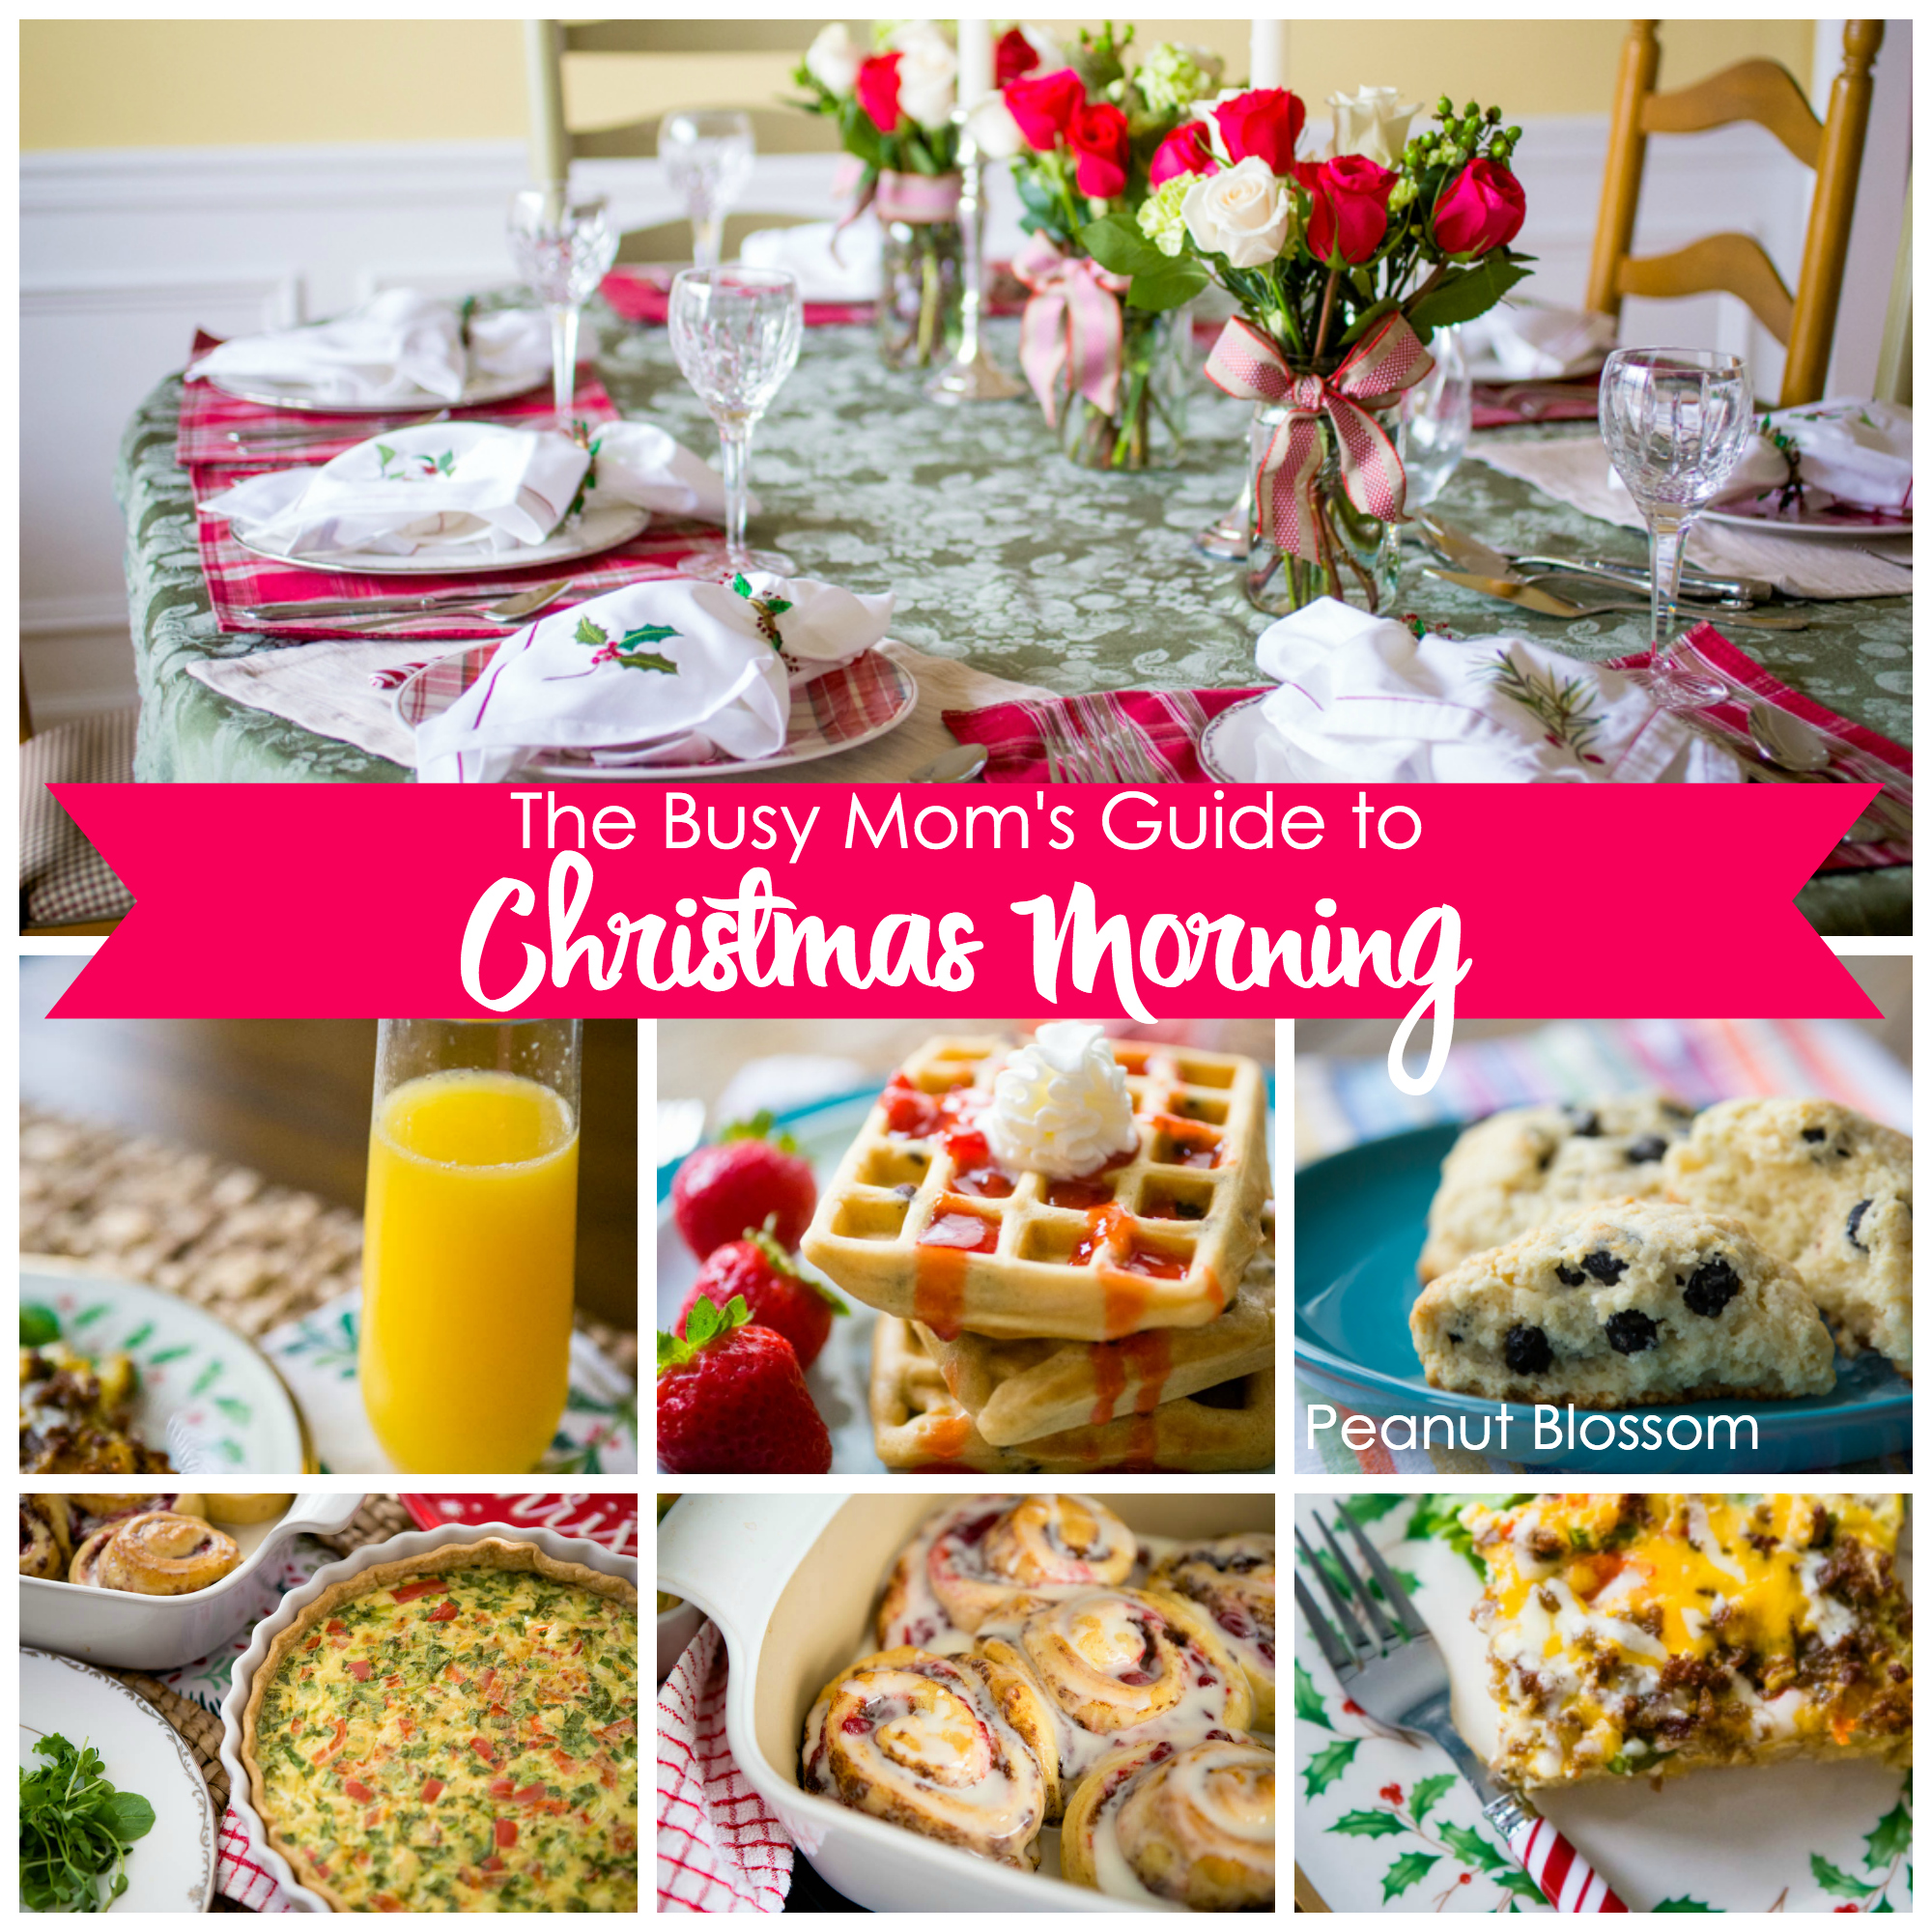 The busy mom's guide to Christmas brunch: easy recipes, decorating tips, and how to prep it all in advance